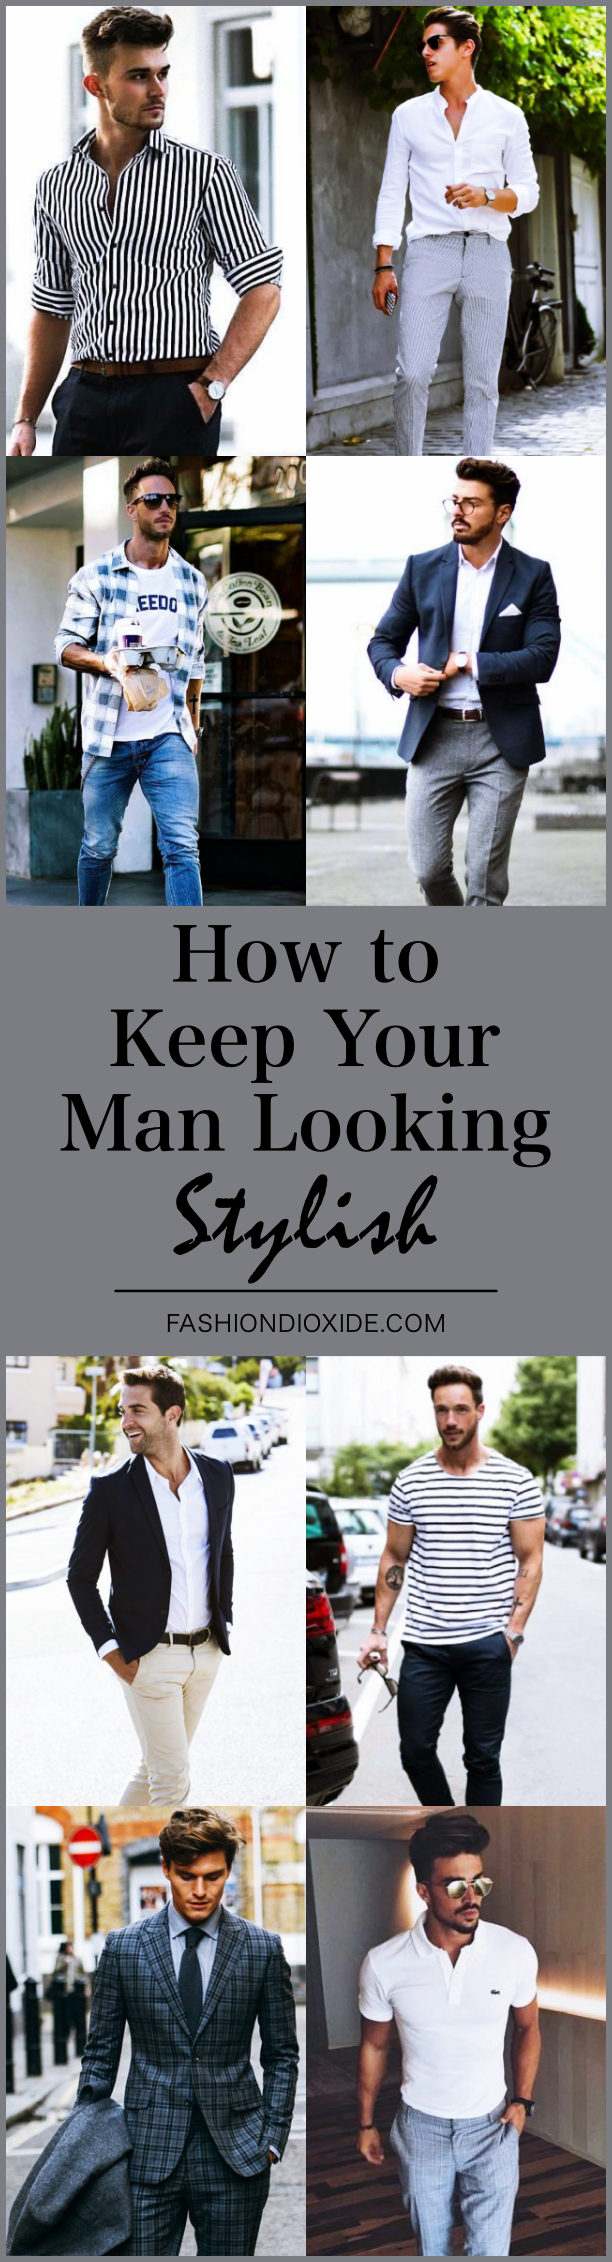 How-to-Keep-Your-Man-Looking-Stylish